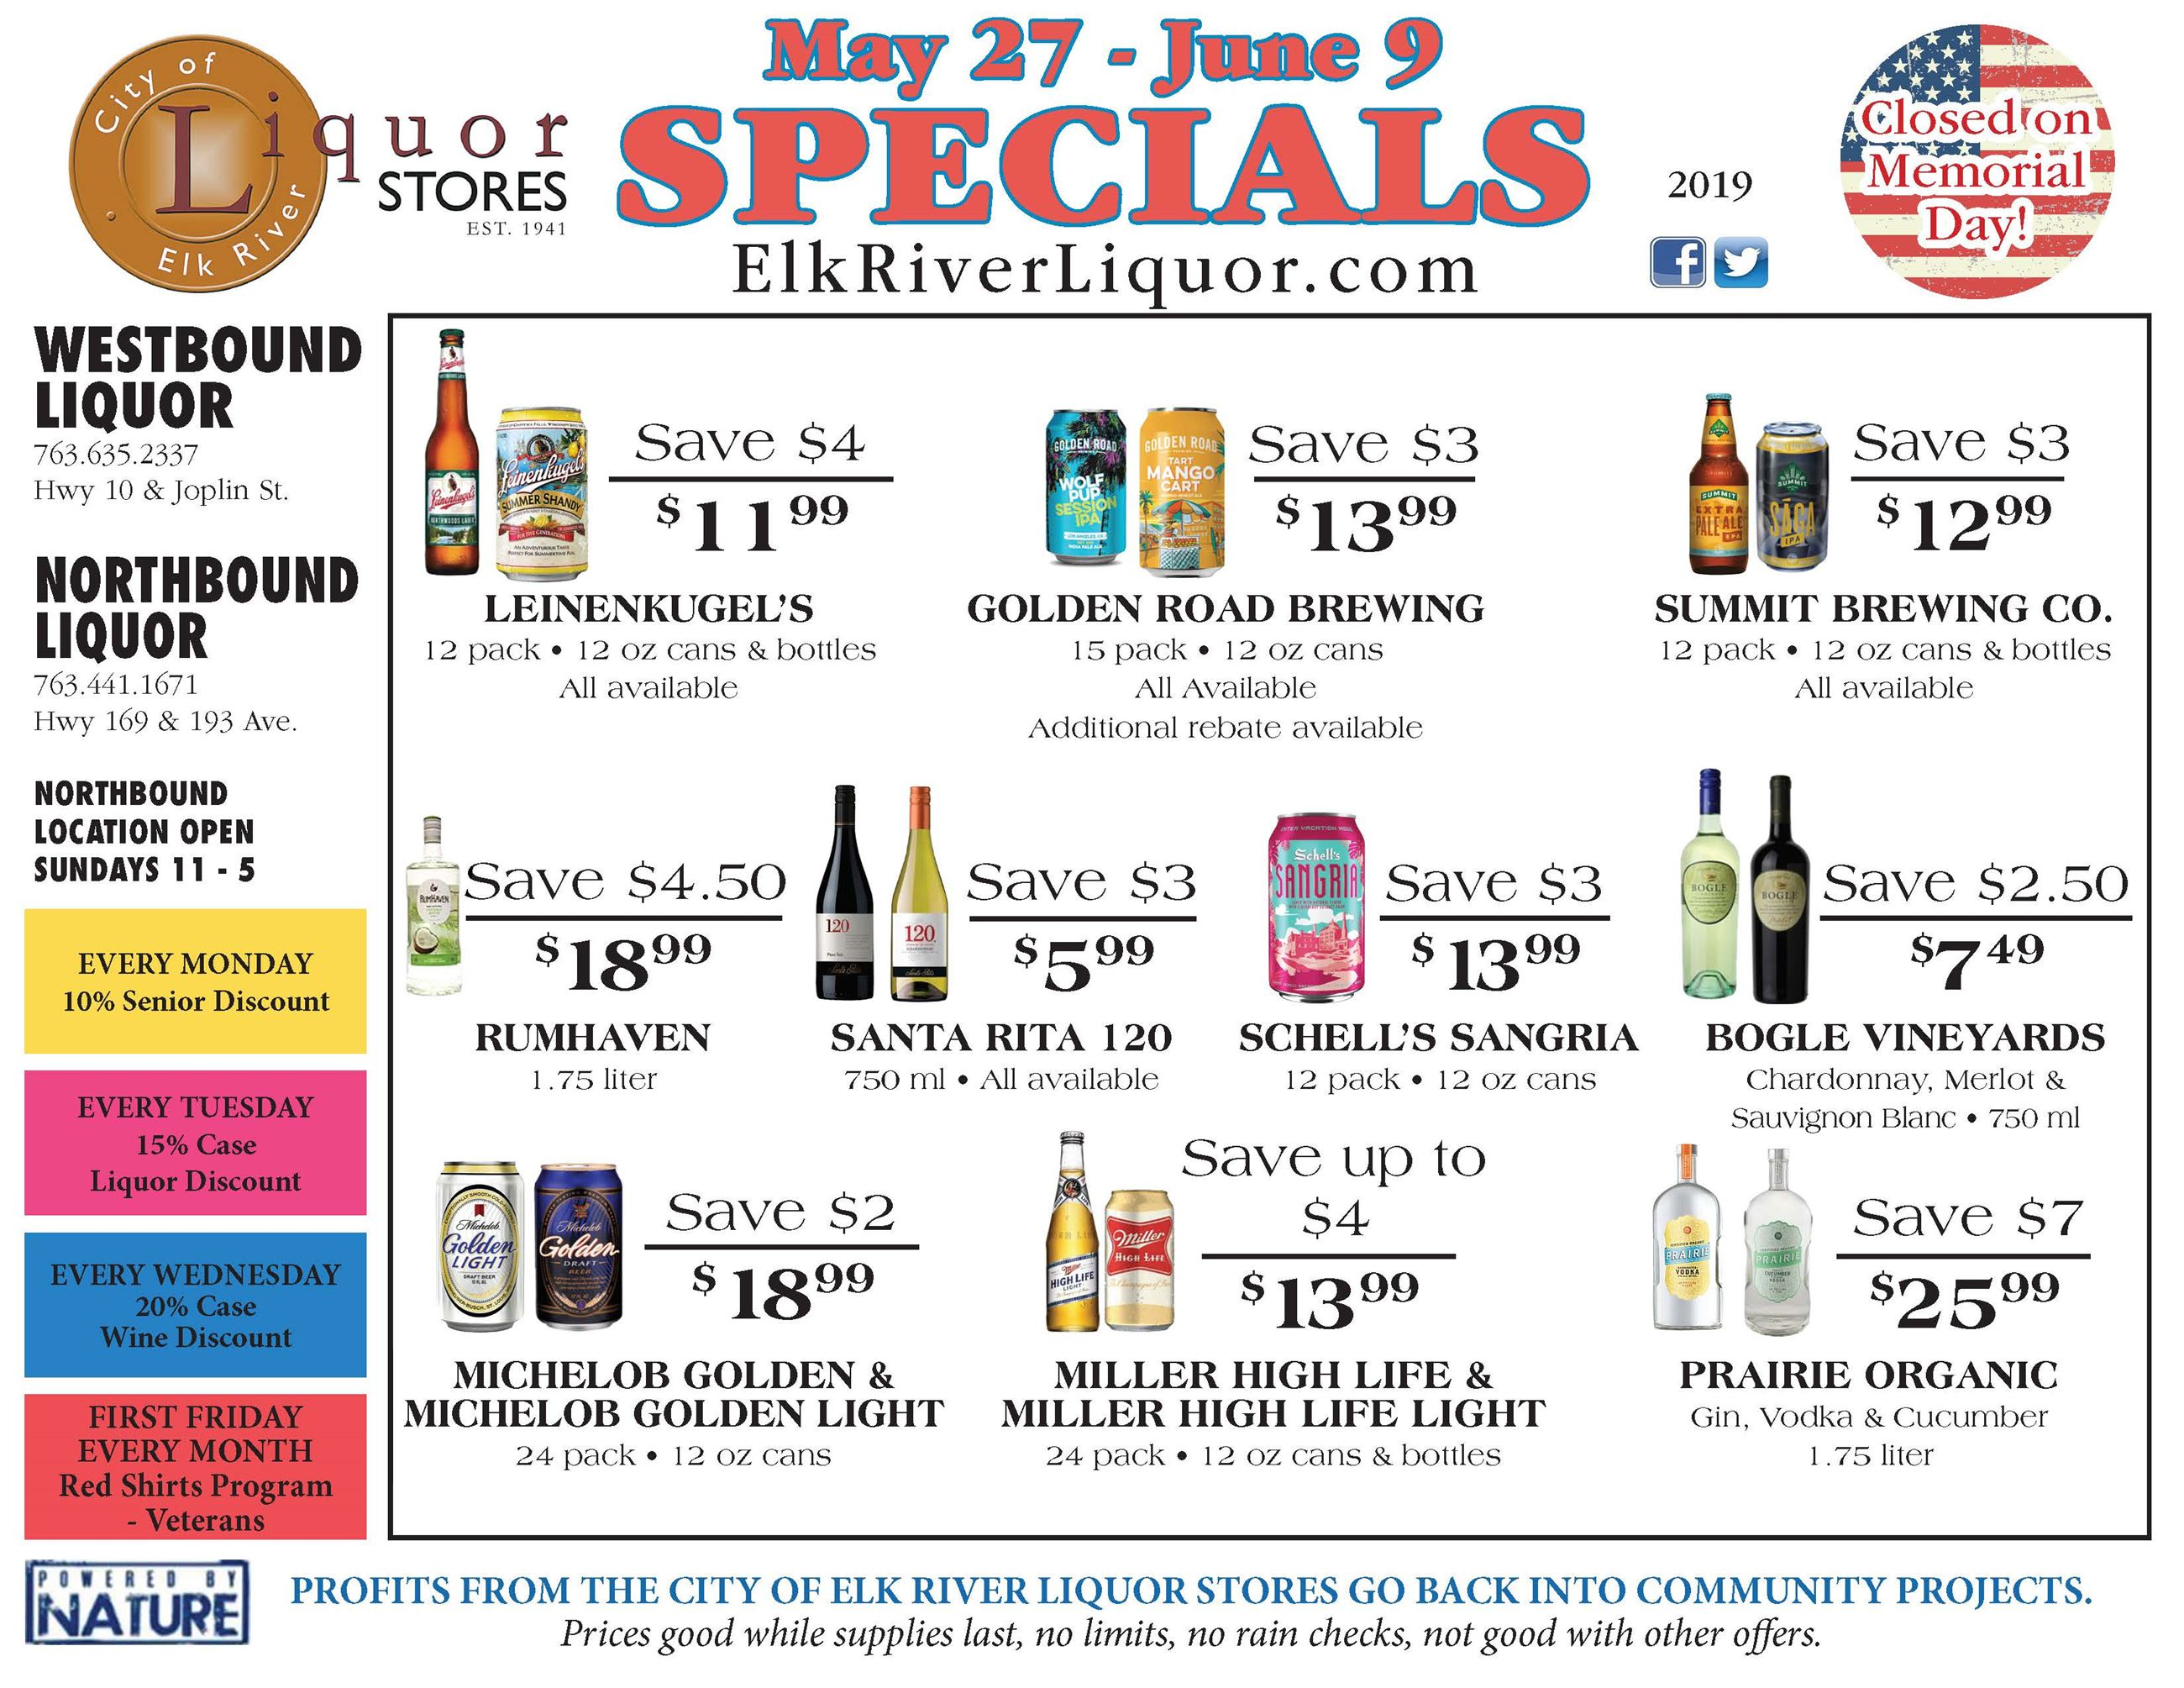 Liquor Store Specials May 27 - June 9